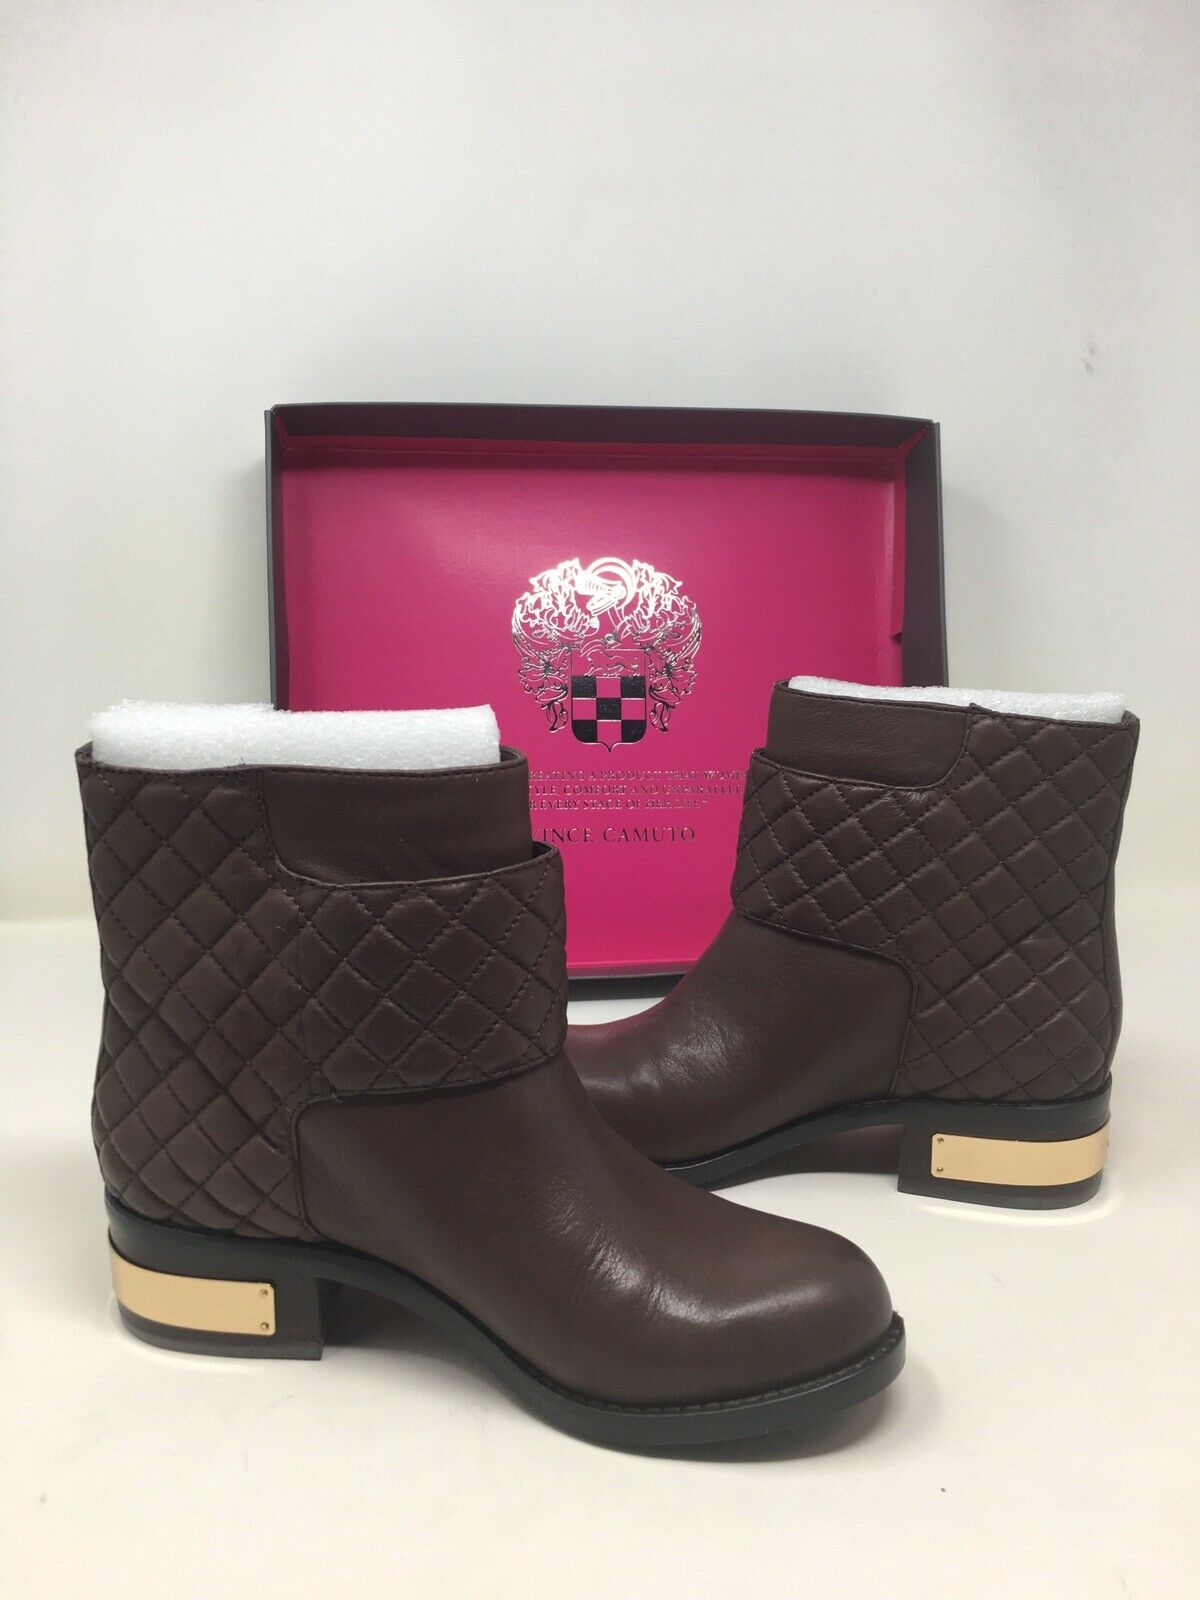 Vince Camuto ankle boots VC-Winta Burly BROWN Pampas size 6.5M US buckle women @